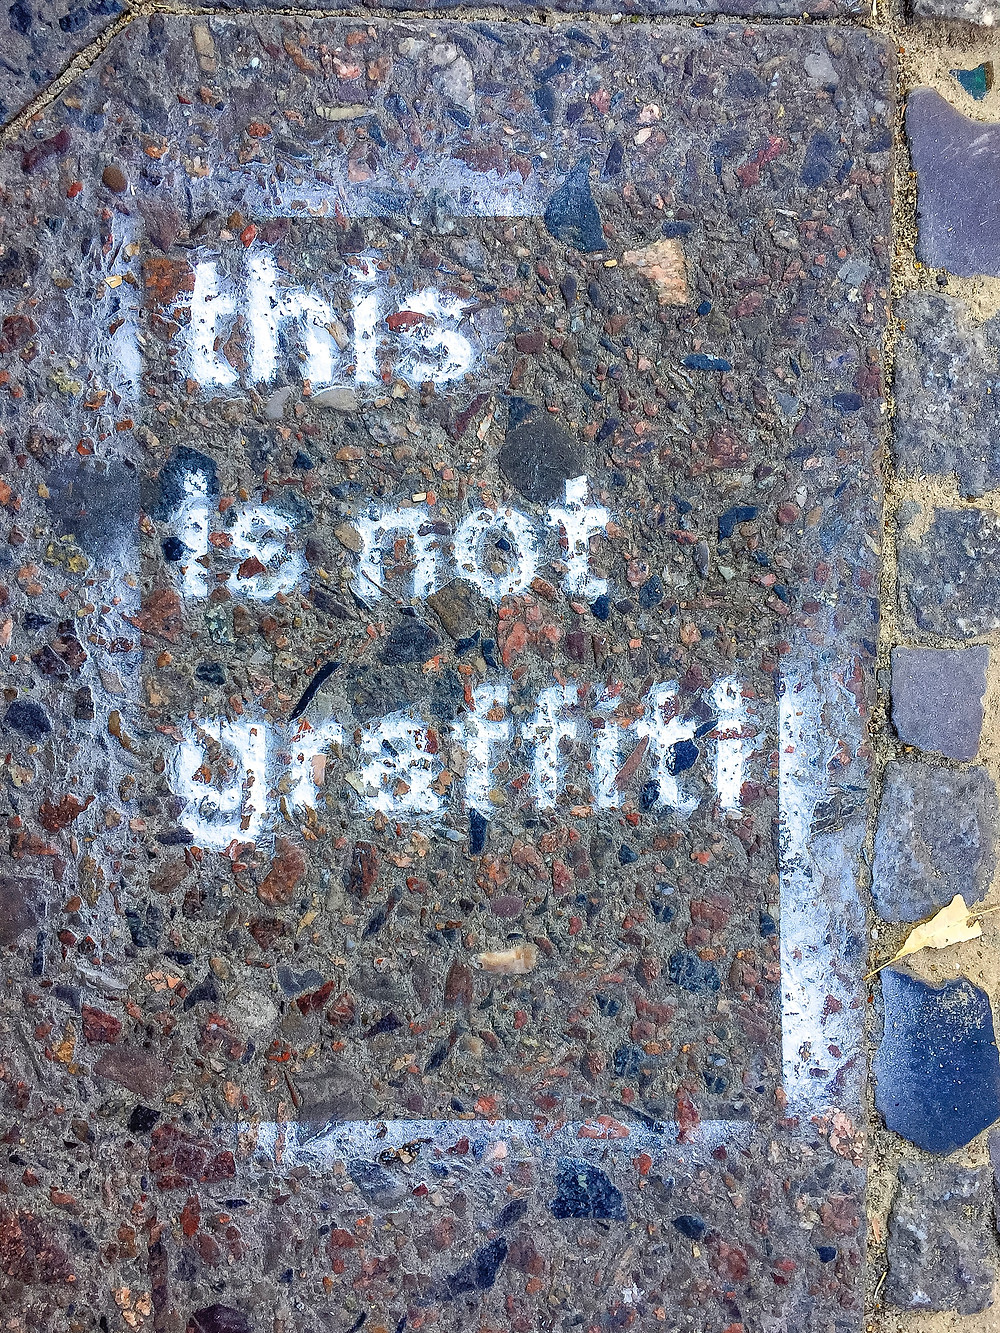 This is an image of graffiti.